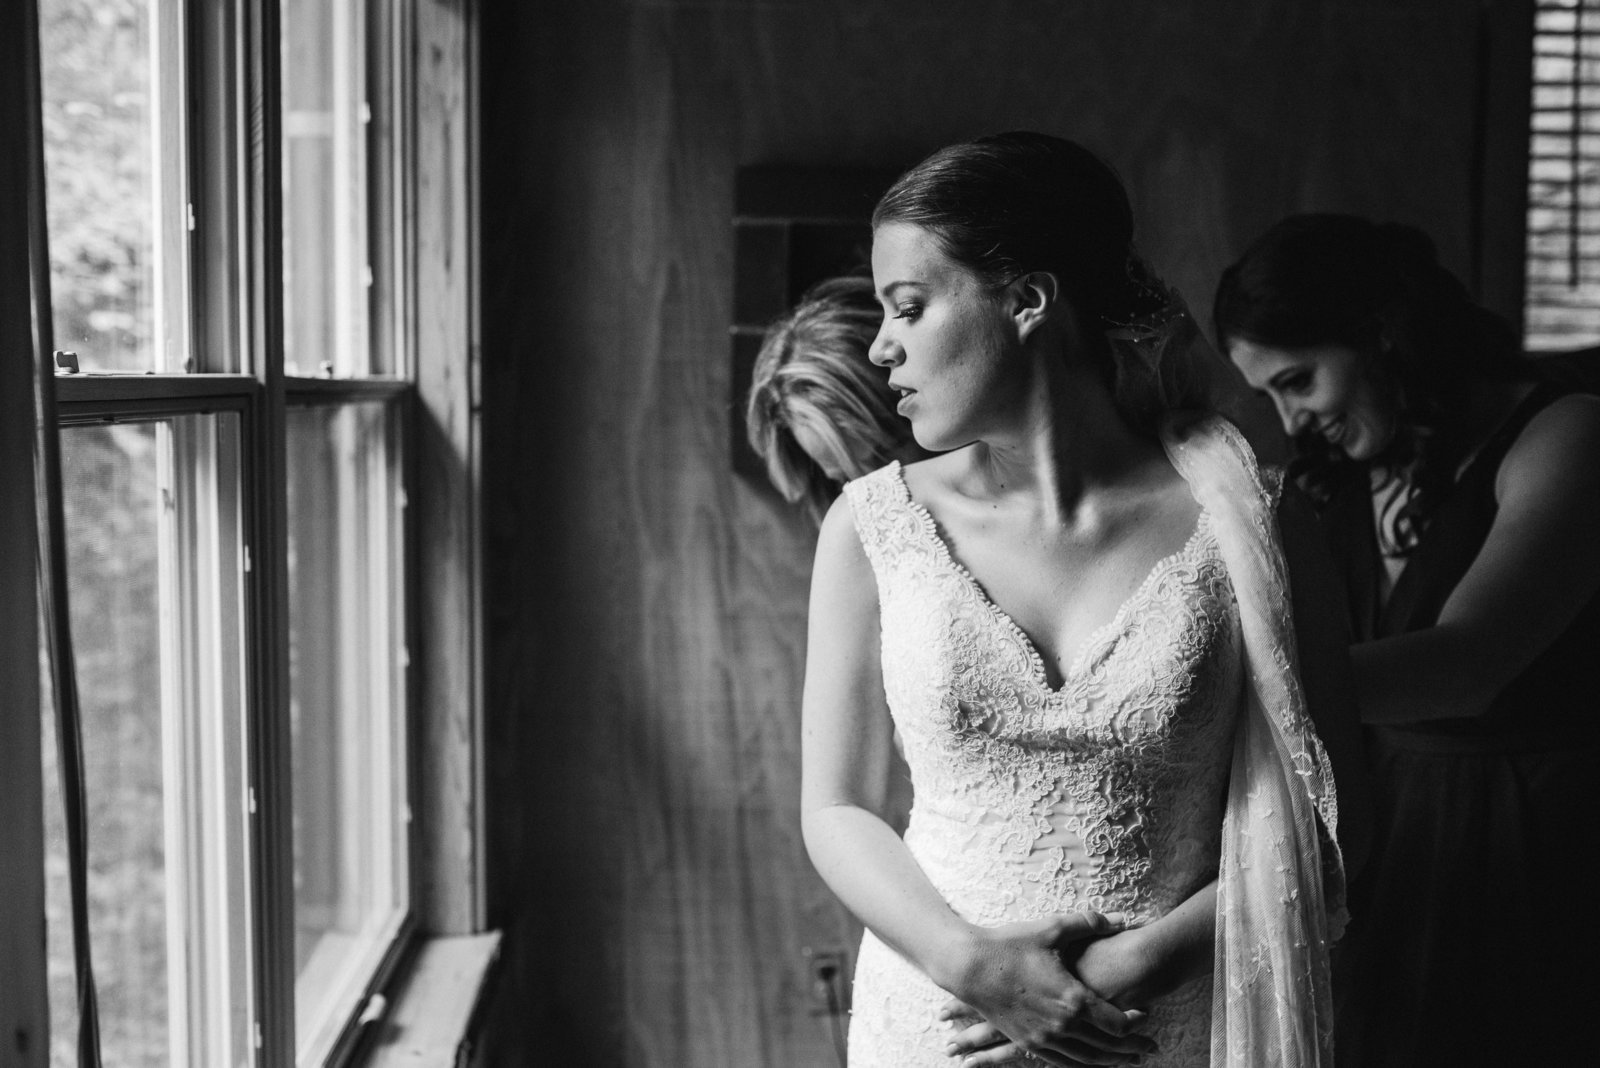 bw candid seattle wedding photo